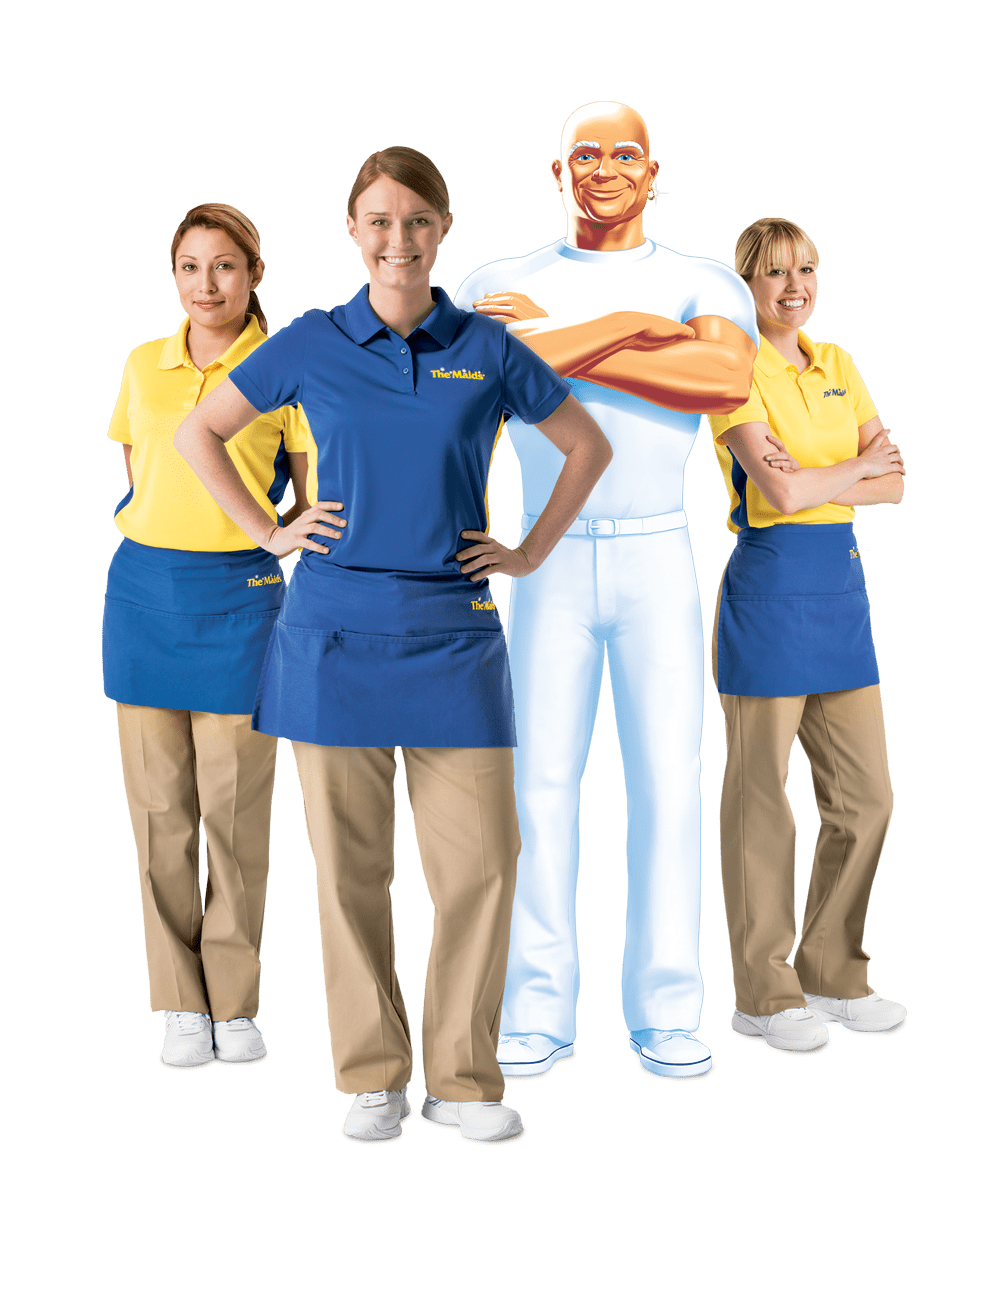 The Maids House Cleaning - St. Charles County Home Cleaning